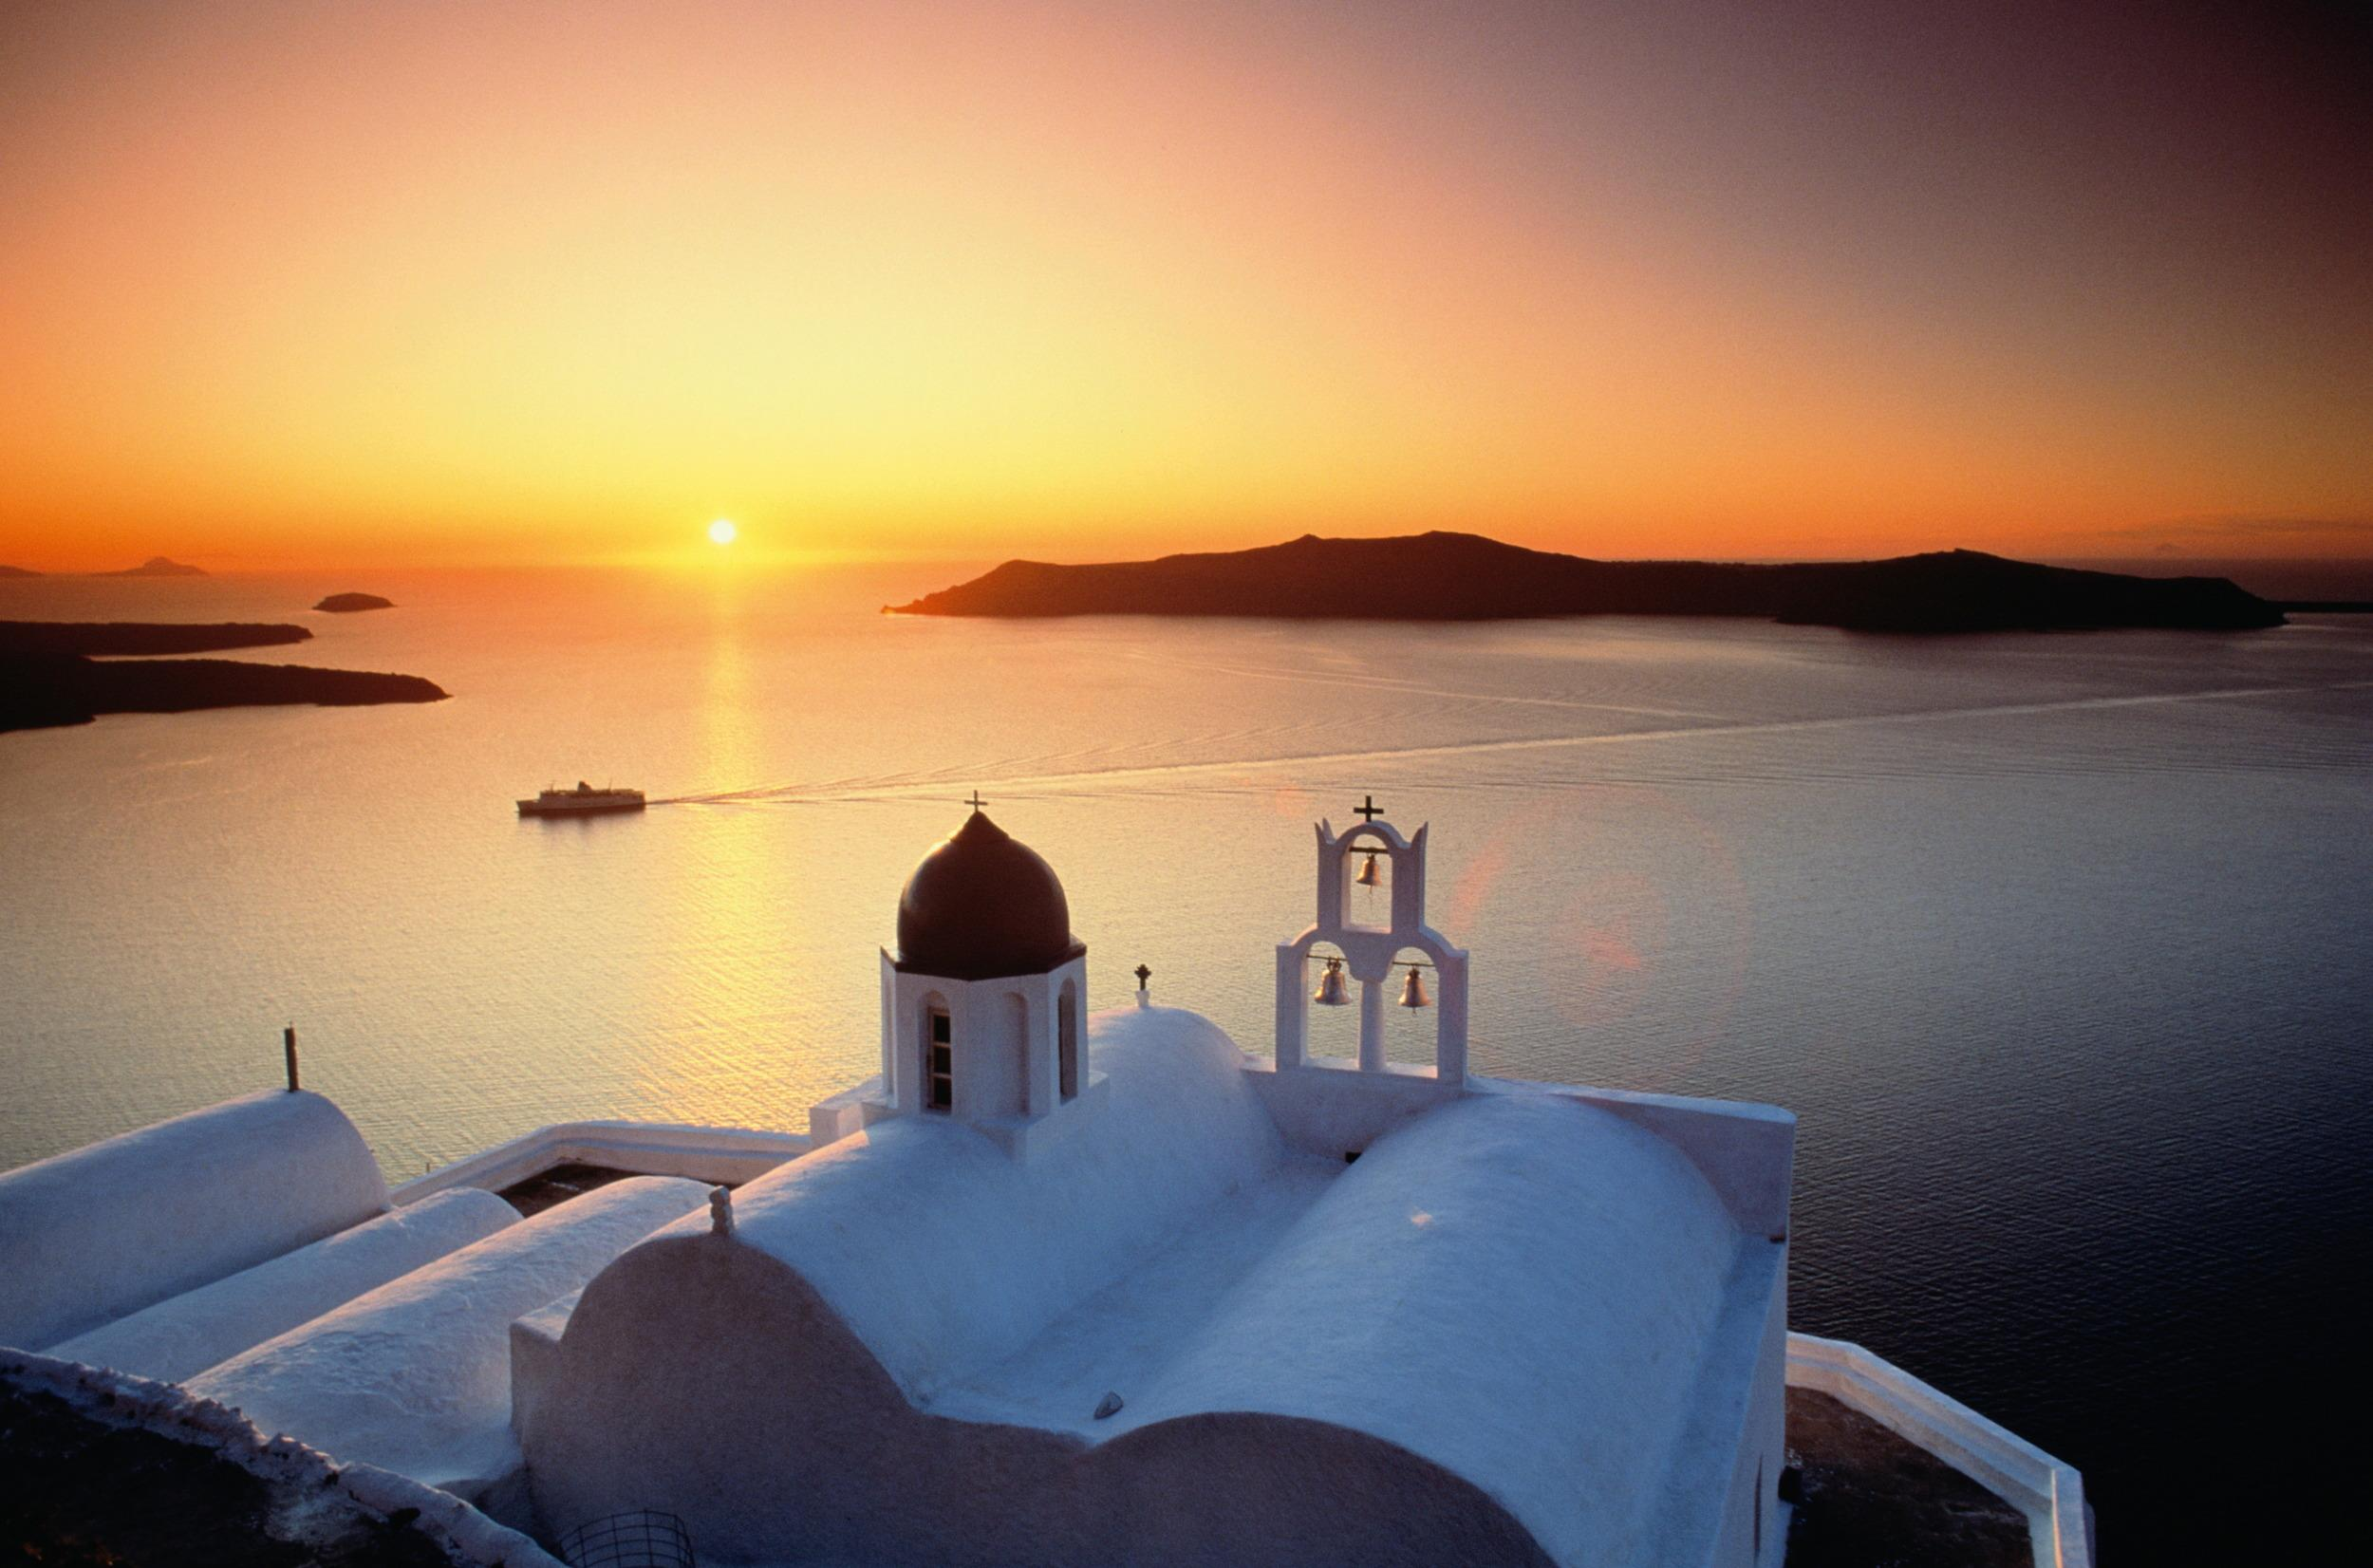 """<p><span style=""""font-family:helvetica, arial;font-size:16px;background-color:rgb(255, 255, 255);"""">Spellbinding sunsets await you on the isle of Santorini, where you can wine and dine yourselves in a cliffside restaurant, allowing the spectacular views to enchant your senses. Regarded by many as one of the most beautiful locations on earth to witness the sun setting over the sea, visitors flock to take advantage of the sublime views from the cliff towns all year round. From the quintessentially Greek whitewashed churches with bright blue-domes, to quaint little towns like Oia, Santorini is perhaps the most popular island in Greece for romance, considered by newlyweds as a photo-perfect backdrop to the dream honeymoon.</span><span style=""""font-family:helvetica, arial;font-size:16px;"""">Tip: Best time to visit is October when its more peaceful and the water is warm.</span></p>"""